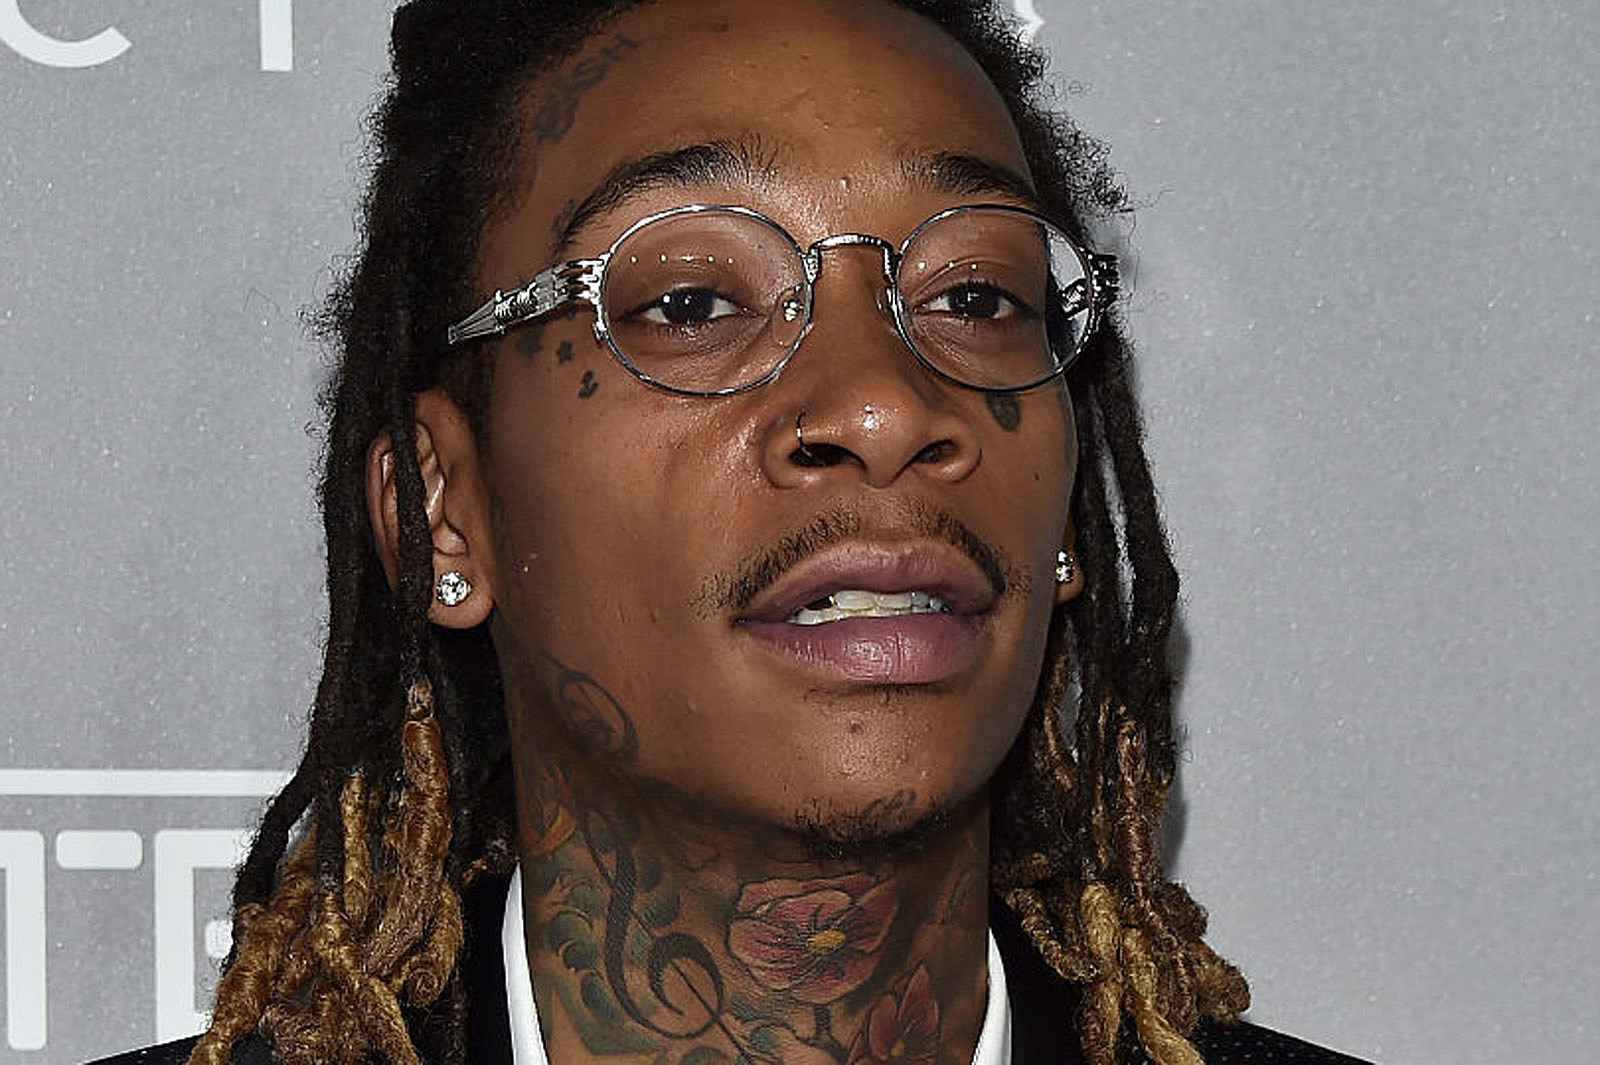 7 Celebrities With Tattoos Inspired by Nipsey Hussle - XXL